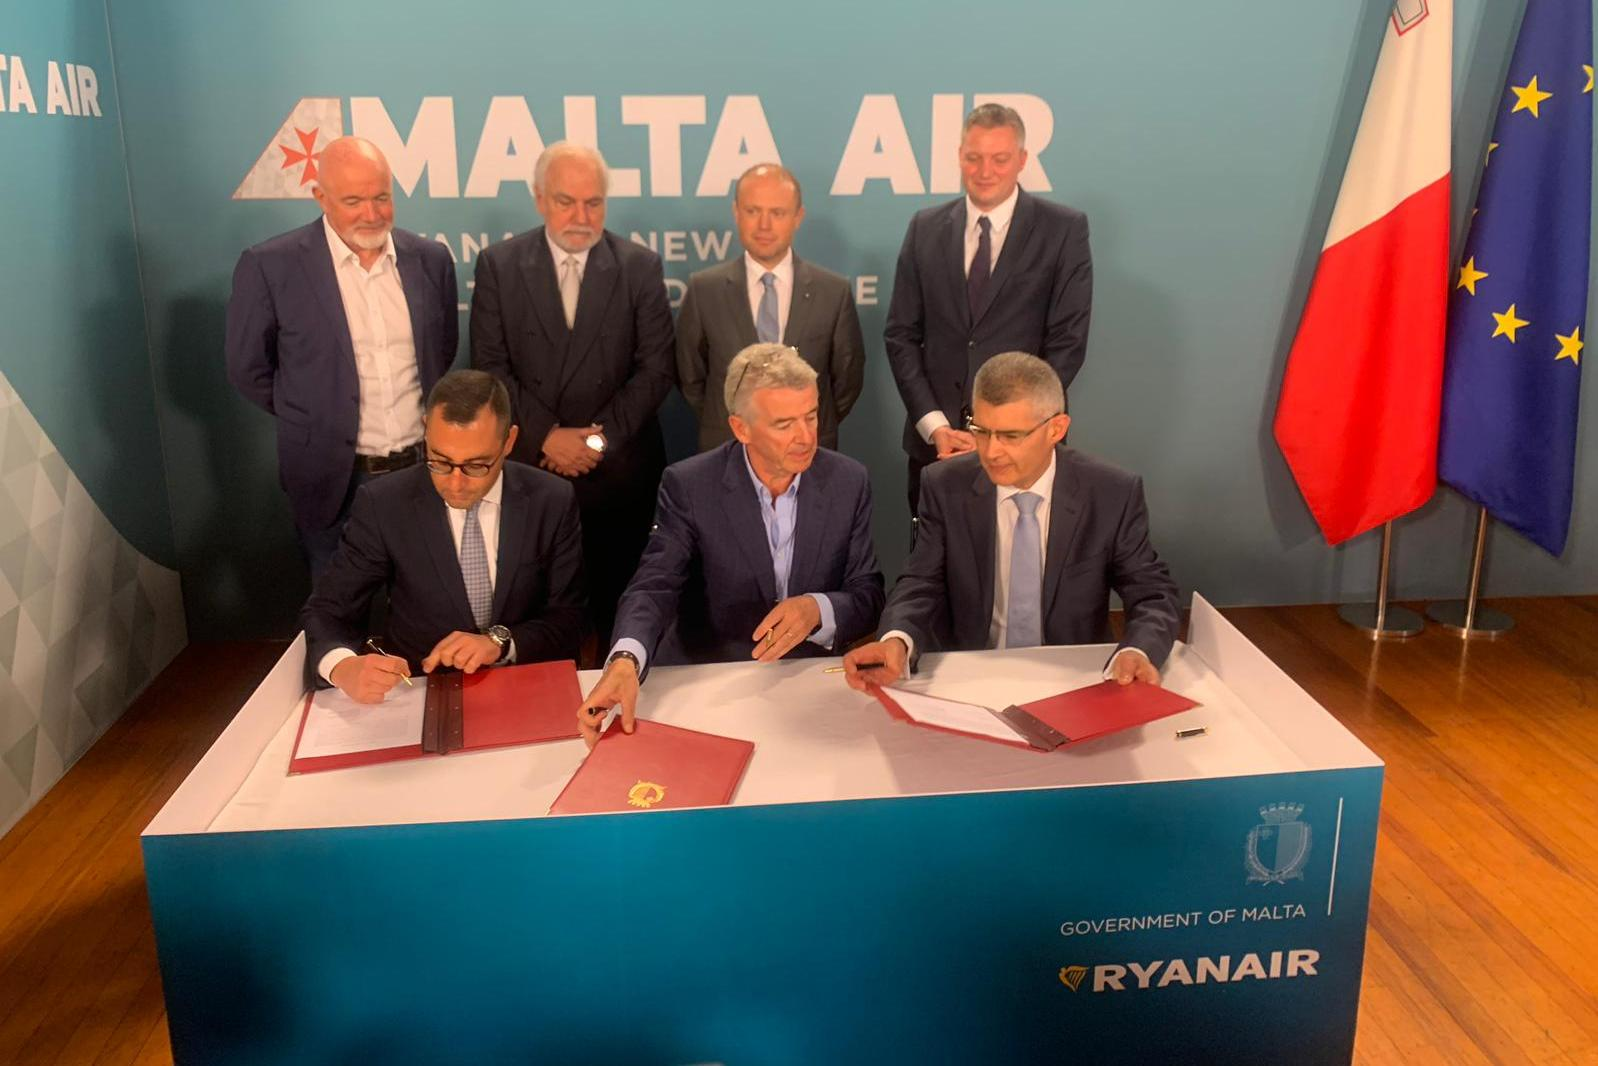 Top government officials including Prime Minister Joseph Muscat look on as Ryanair and the Maltese government seal the deal to create Malta Air. Photo: Ivan Martin